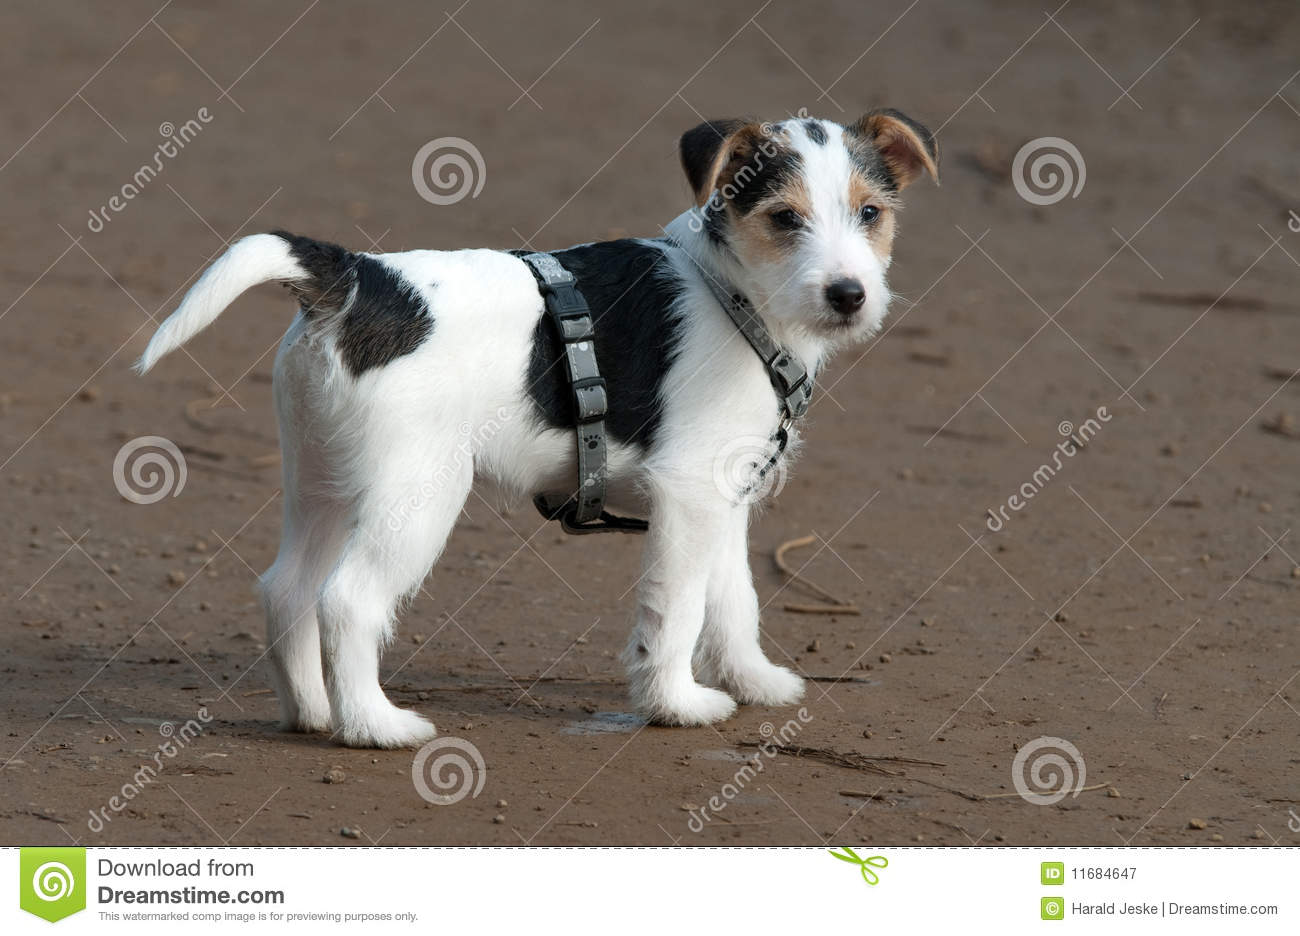 parson jack russell puppy stock image image of view 11684647. Black Bedroom Furniture Sets. Home Design Ideas